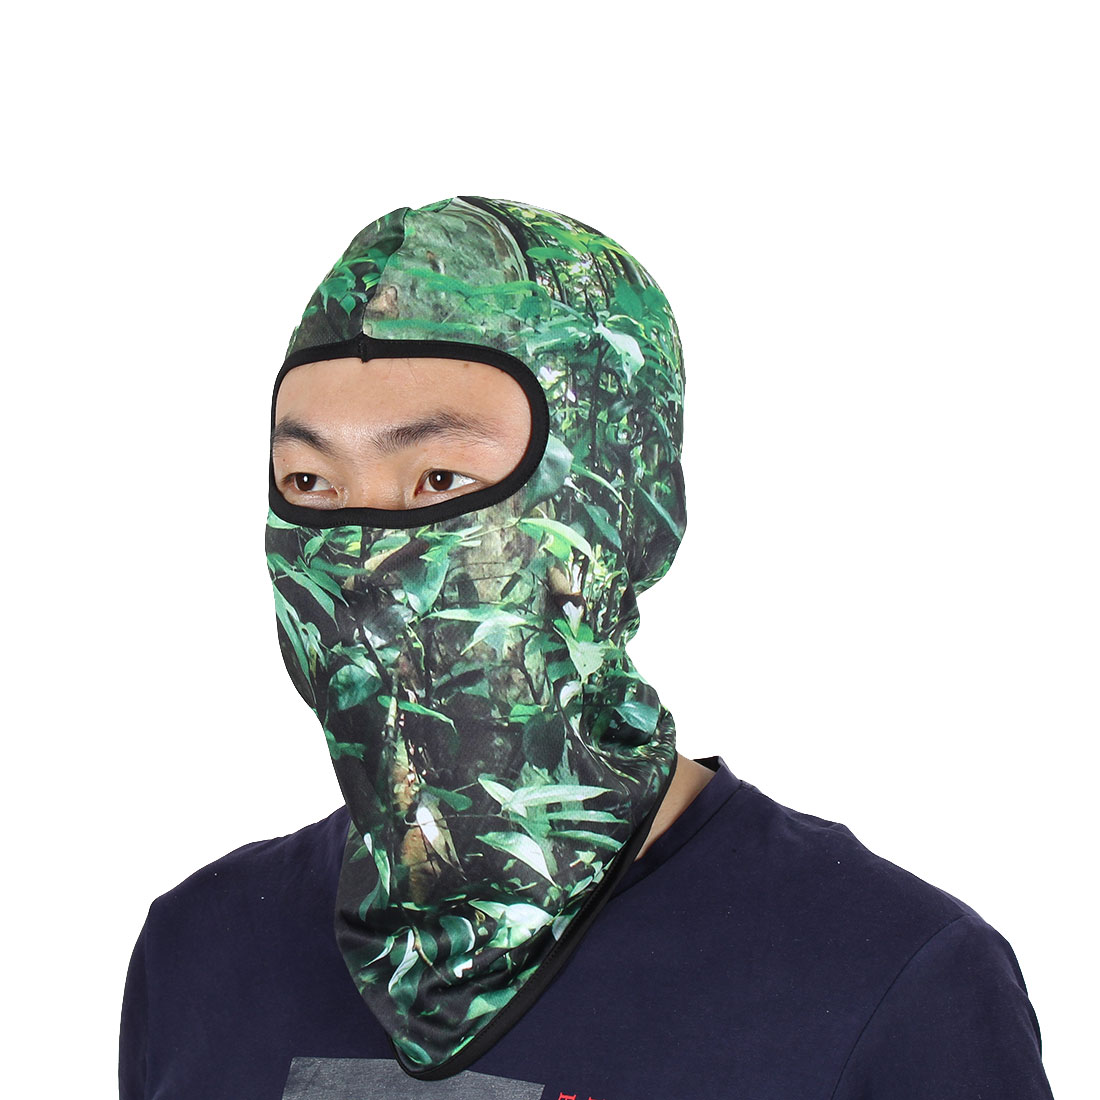 Leave Pattern Full Face Mask Biking Neck Protector Hood Helmet Balaclava Green by Unique-Bargains